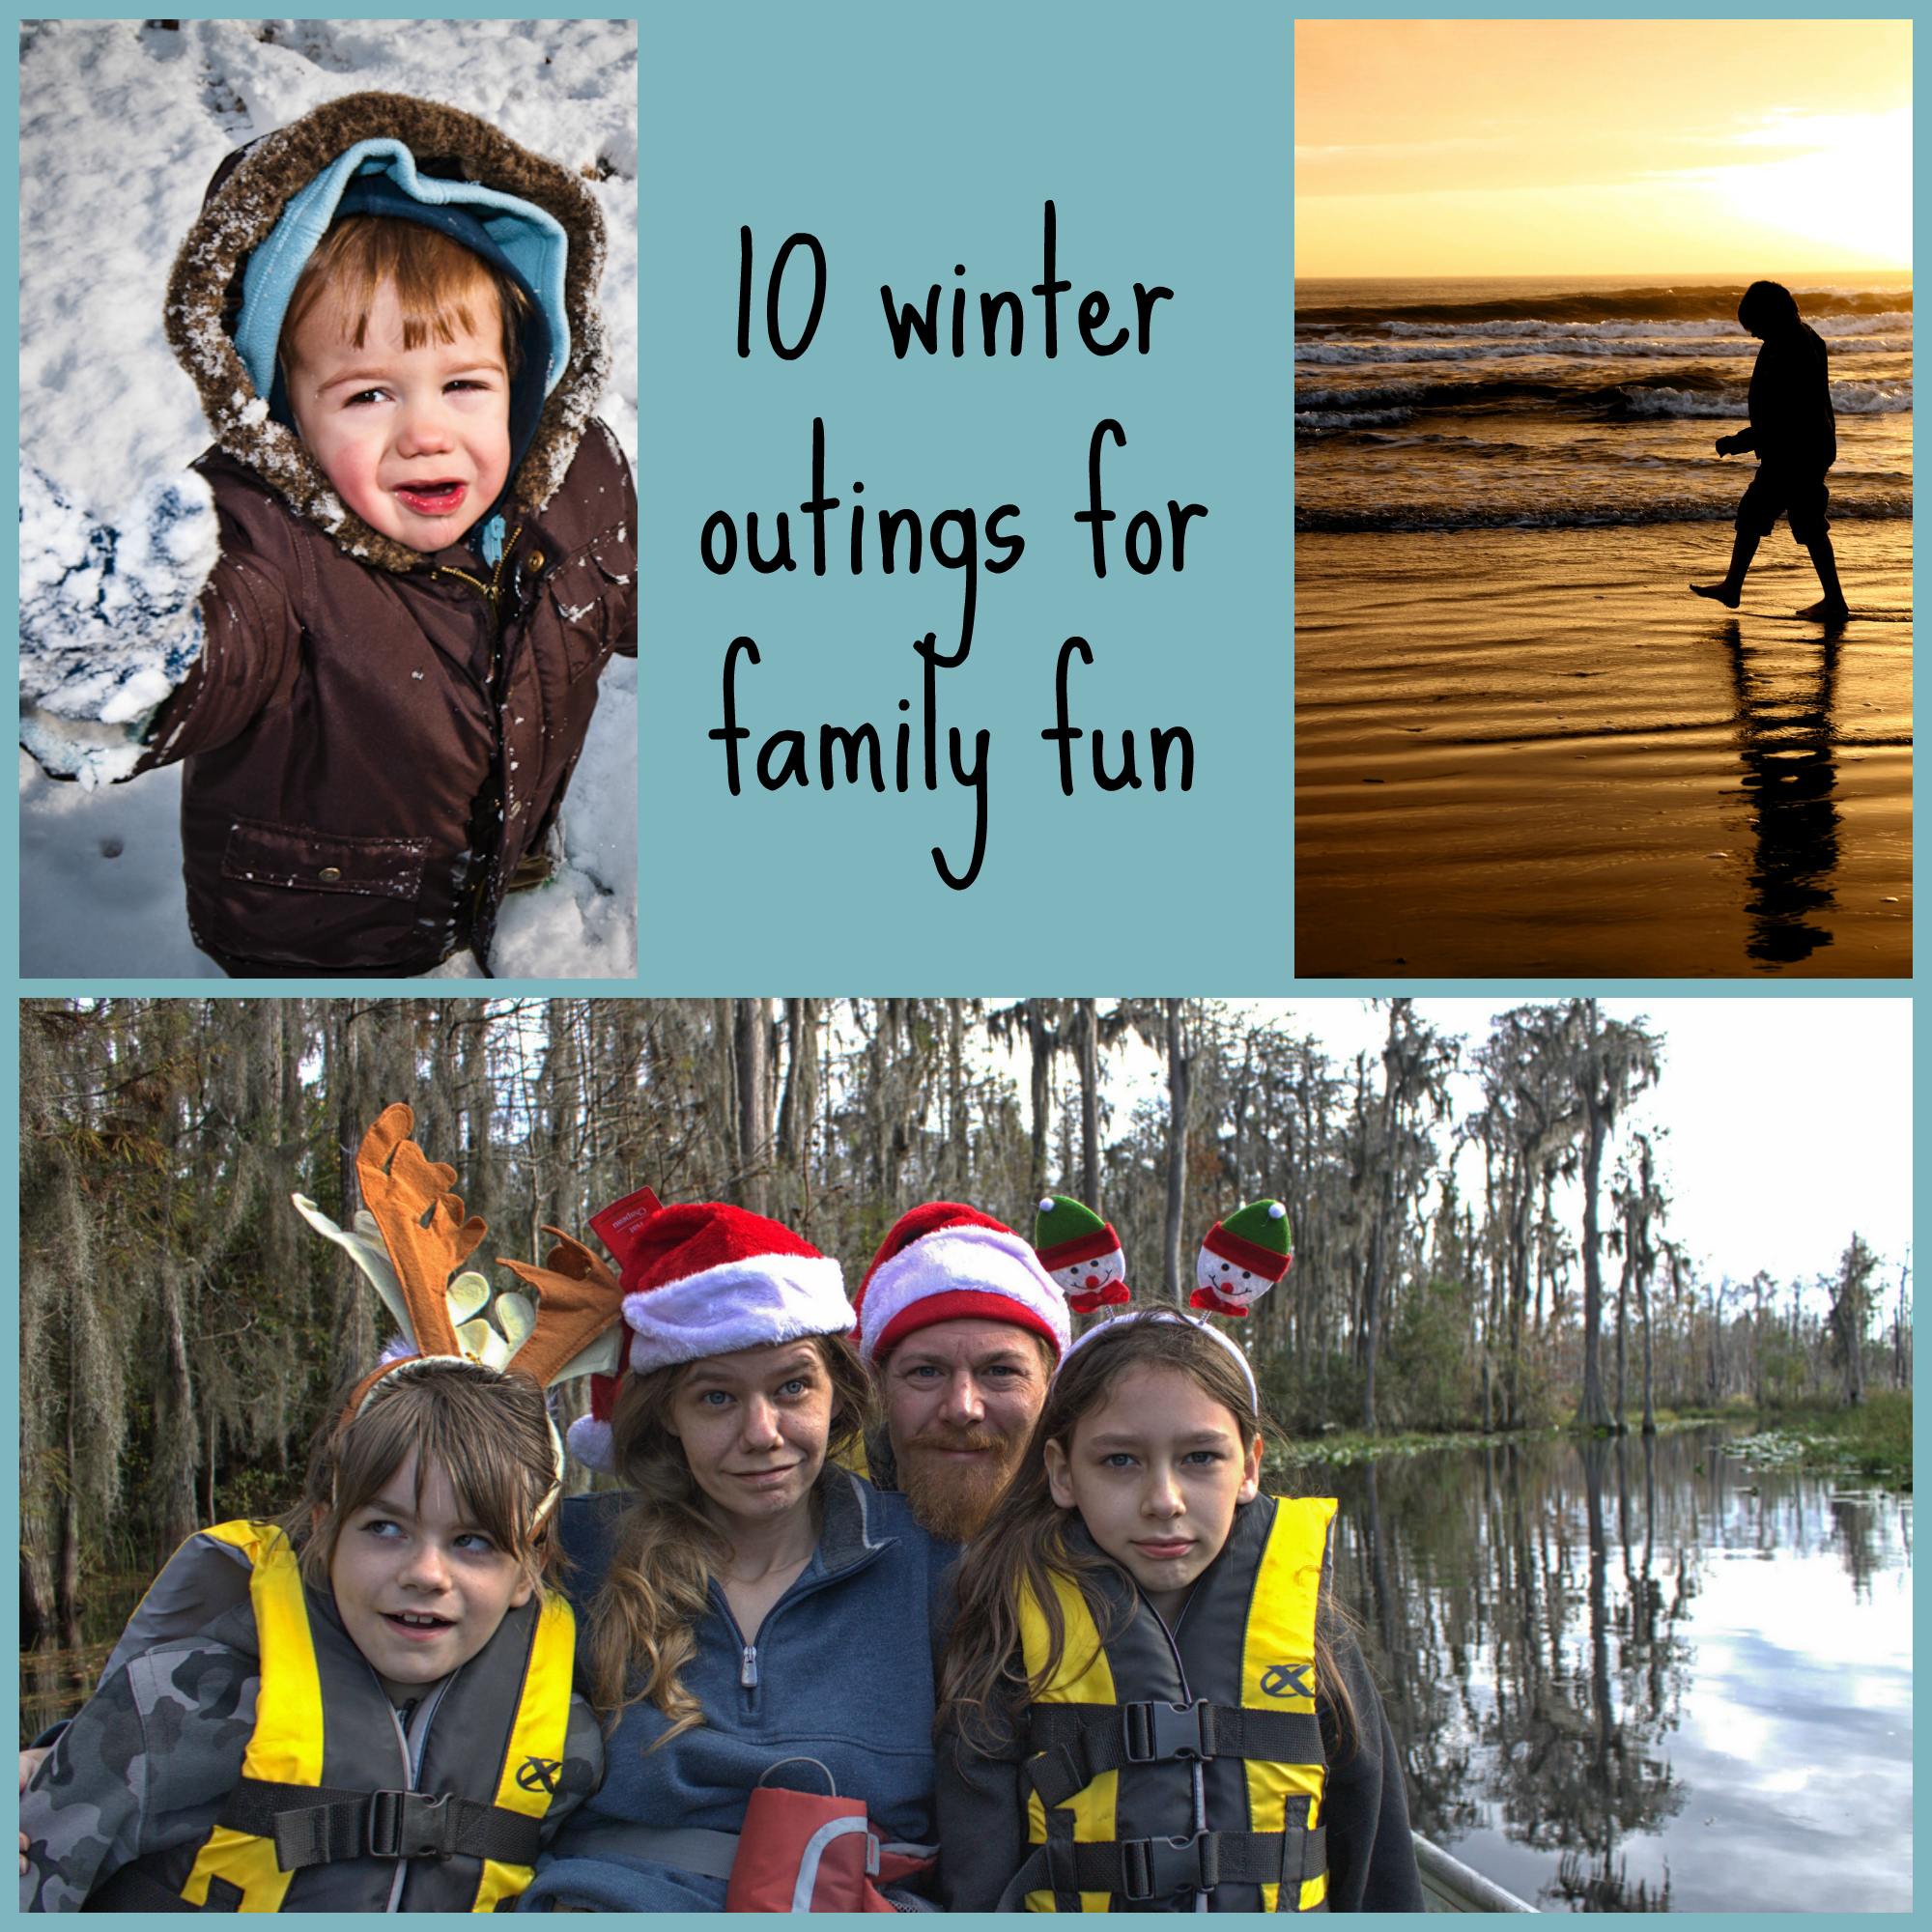 10 winter outings for family fun